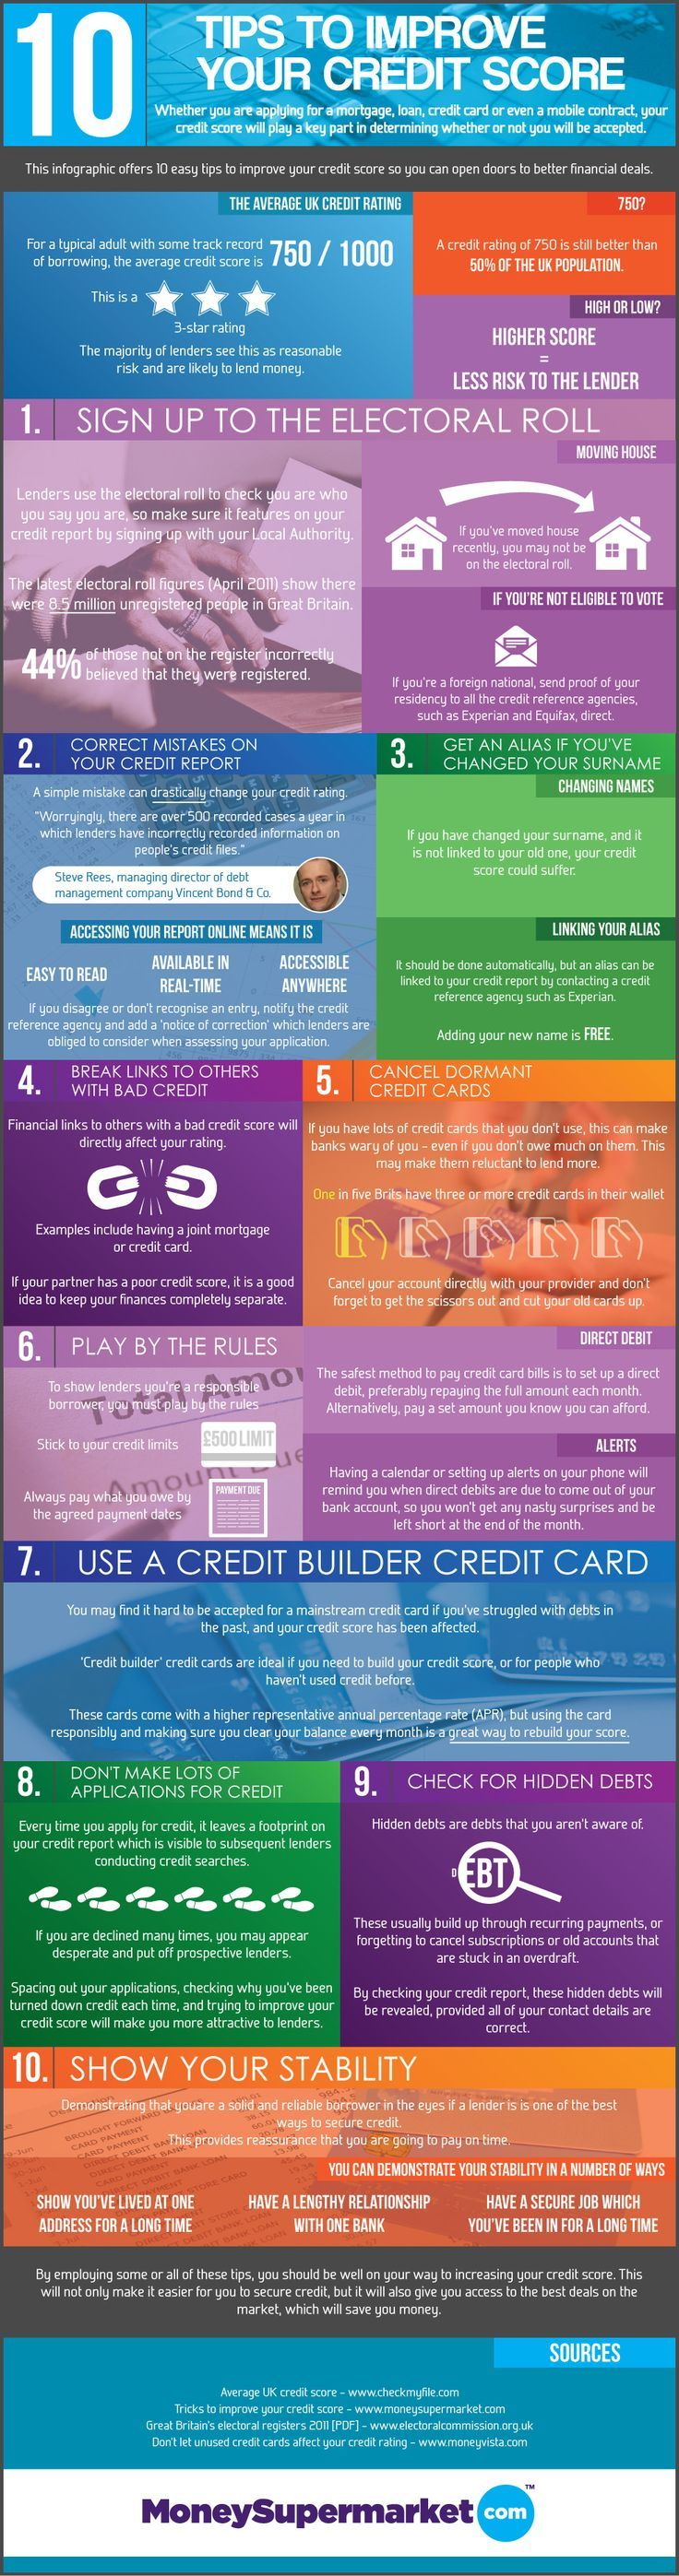 25+ Best Credit Score Ideas On Pinterest  Credit Score For Free, Improve  Credit Score And Get Free Credit Score